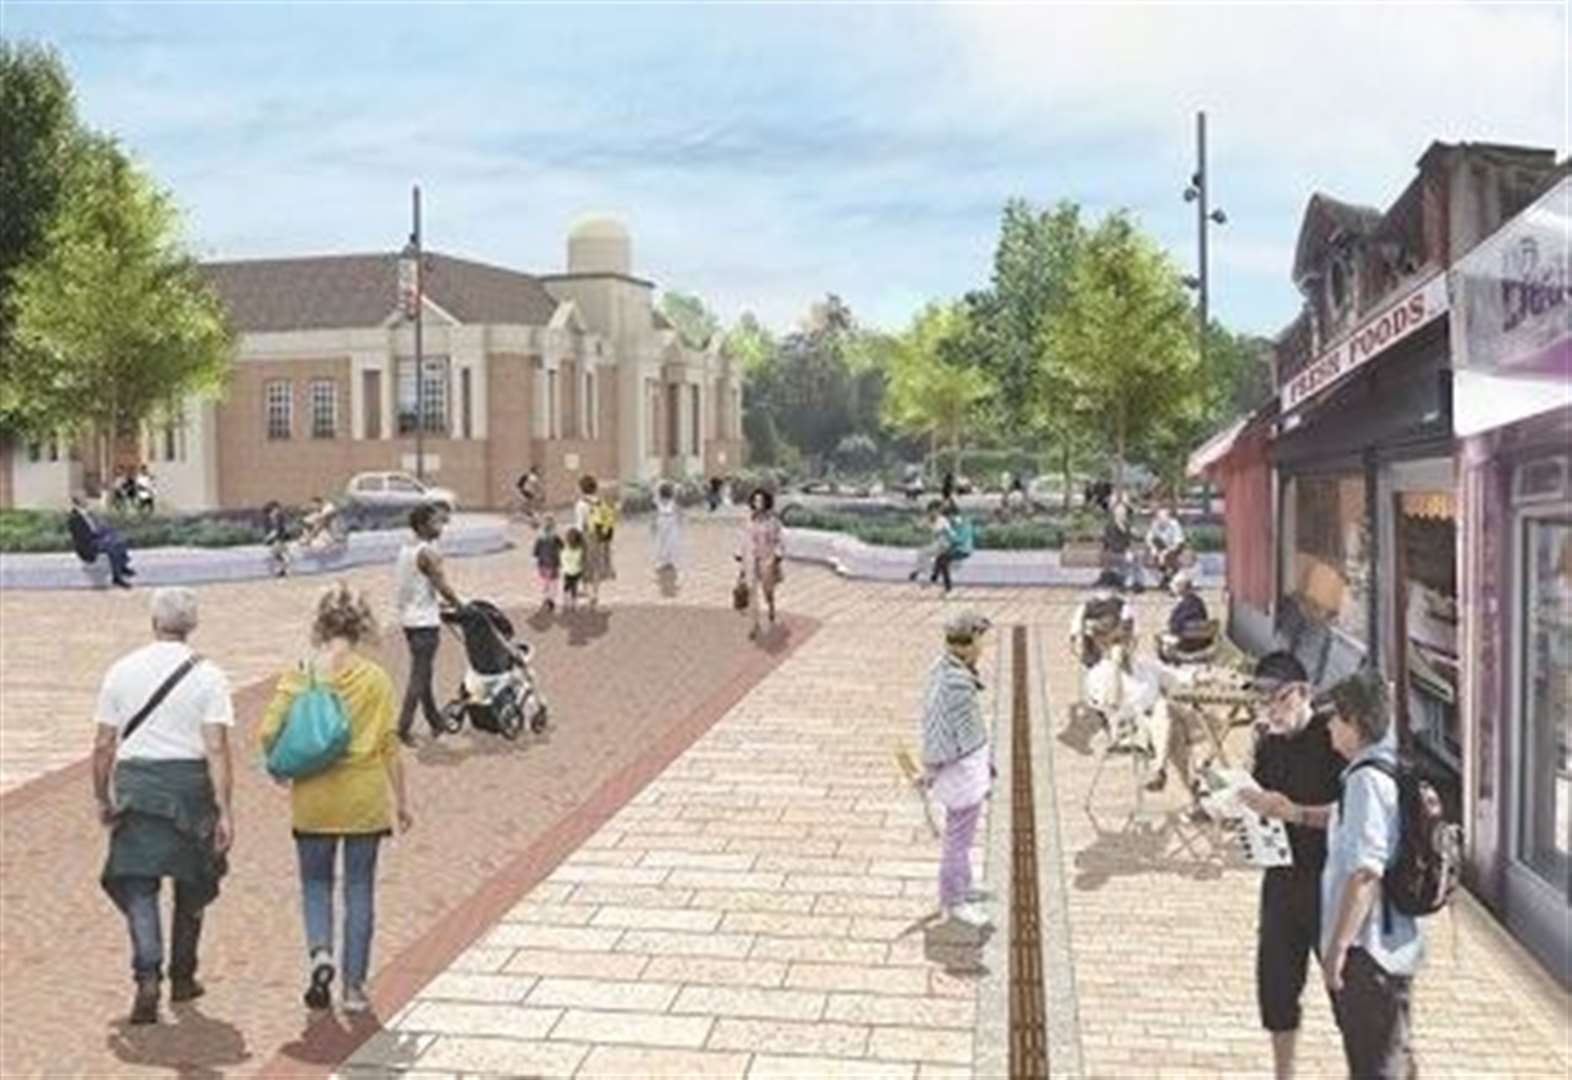 Work to begin on town centre redevelopment